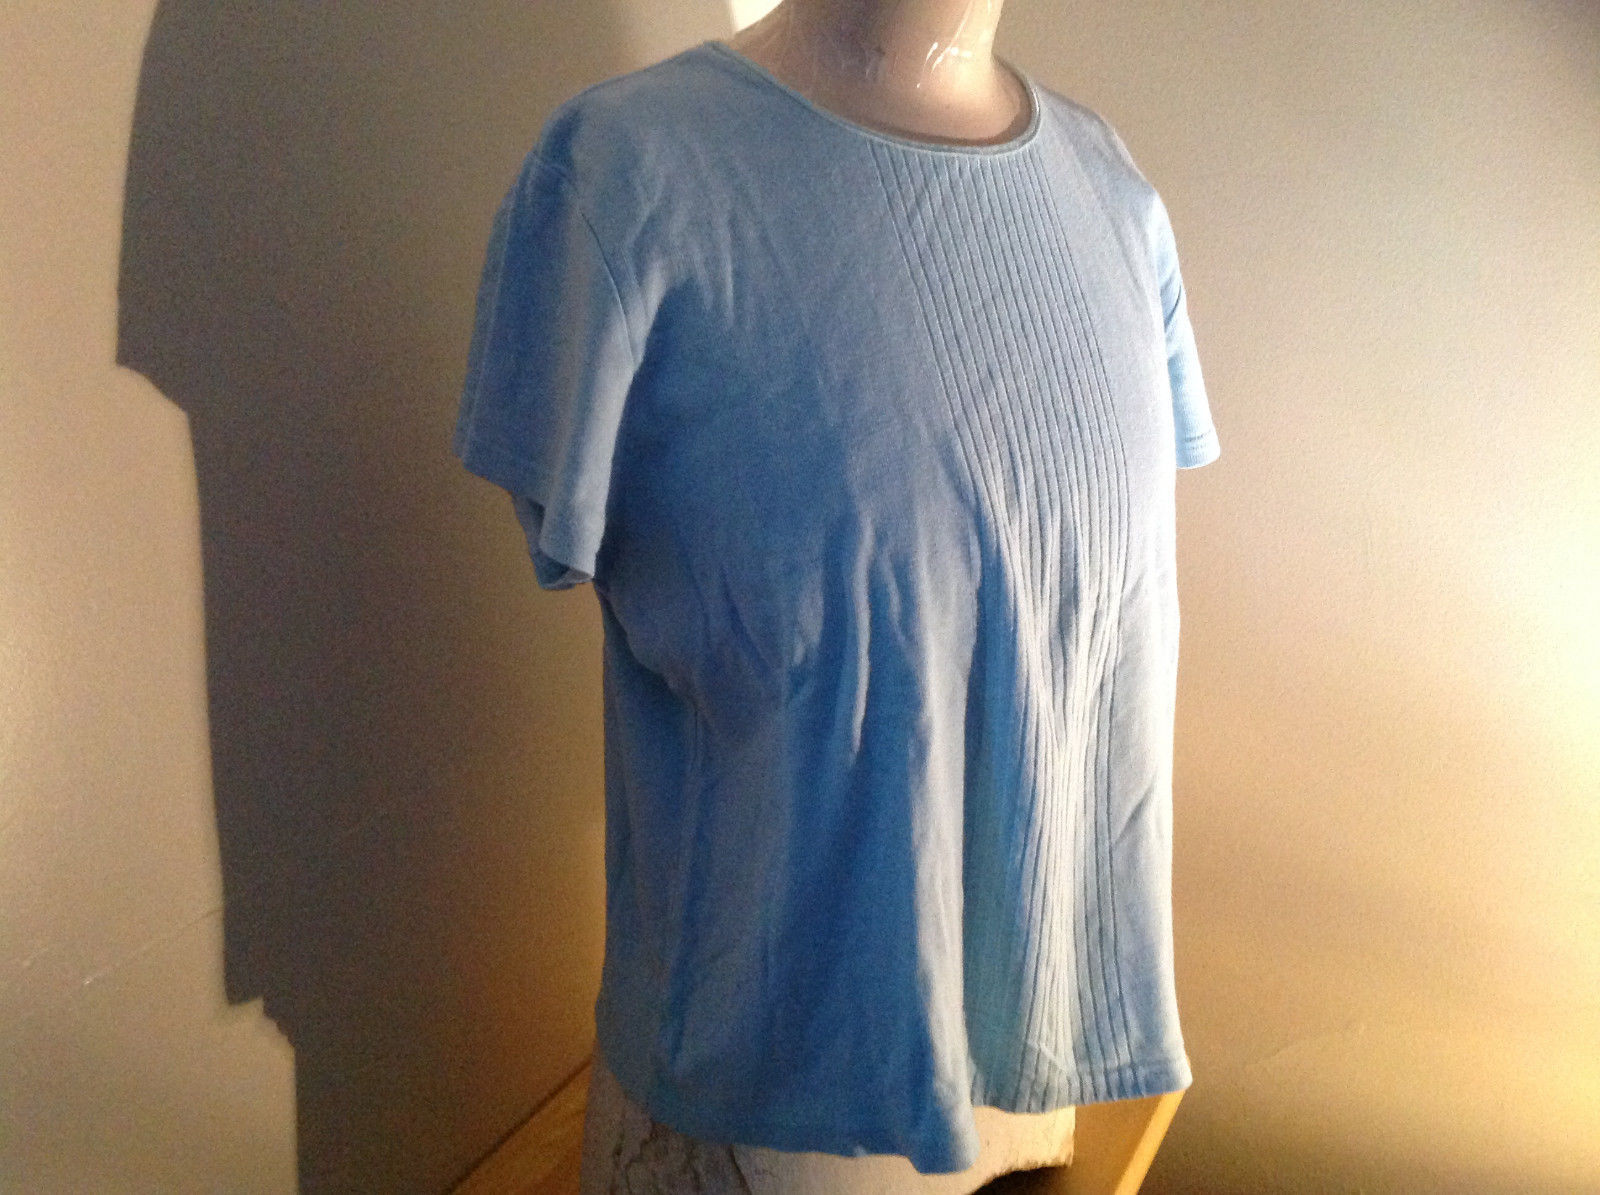 Baby Blue Short Sleeve Sweater Shirt by Jaclyn Smith Made in Guatemala Size XL